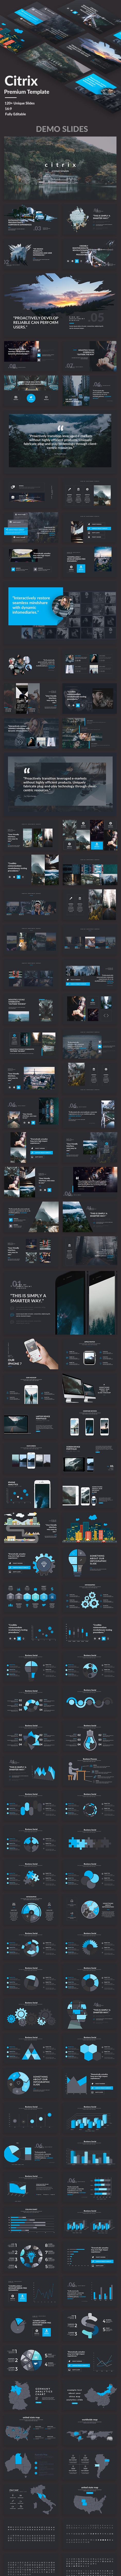 Citrix Premium Projext Keynote Template - Creative PowerPoint Templates